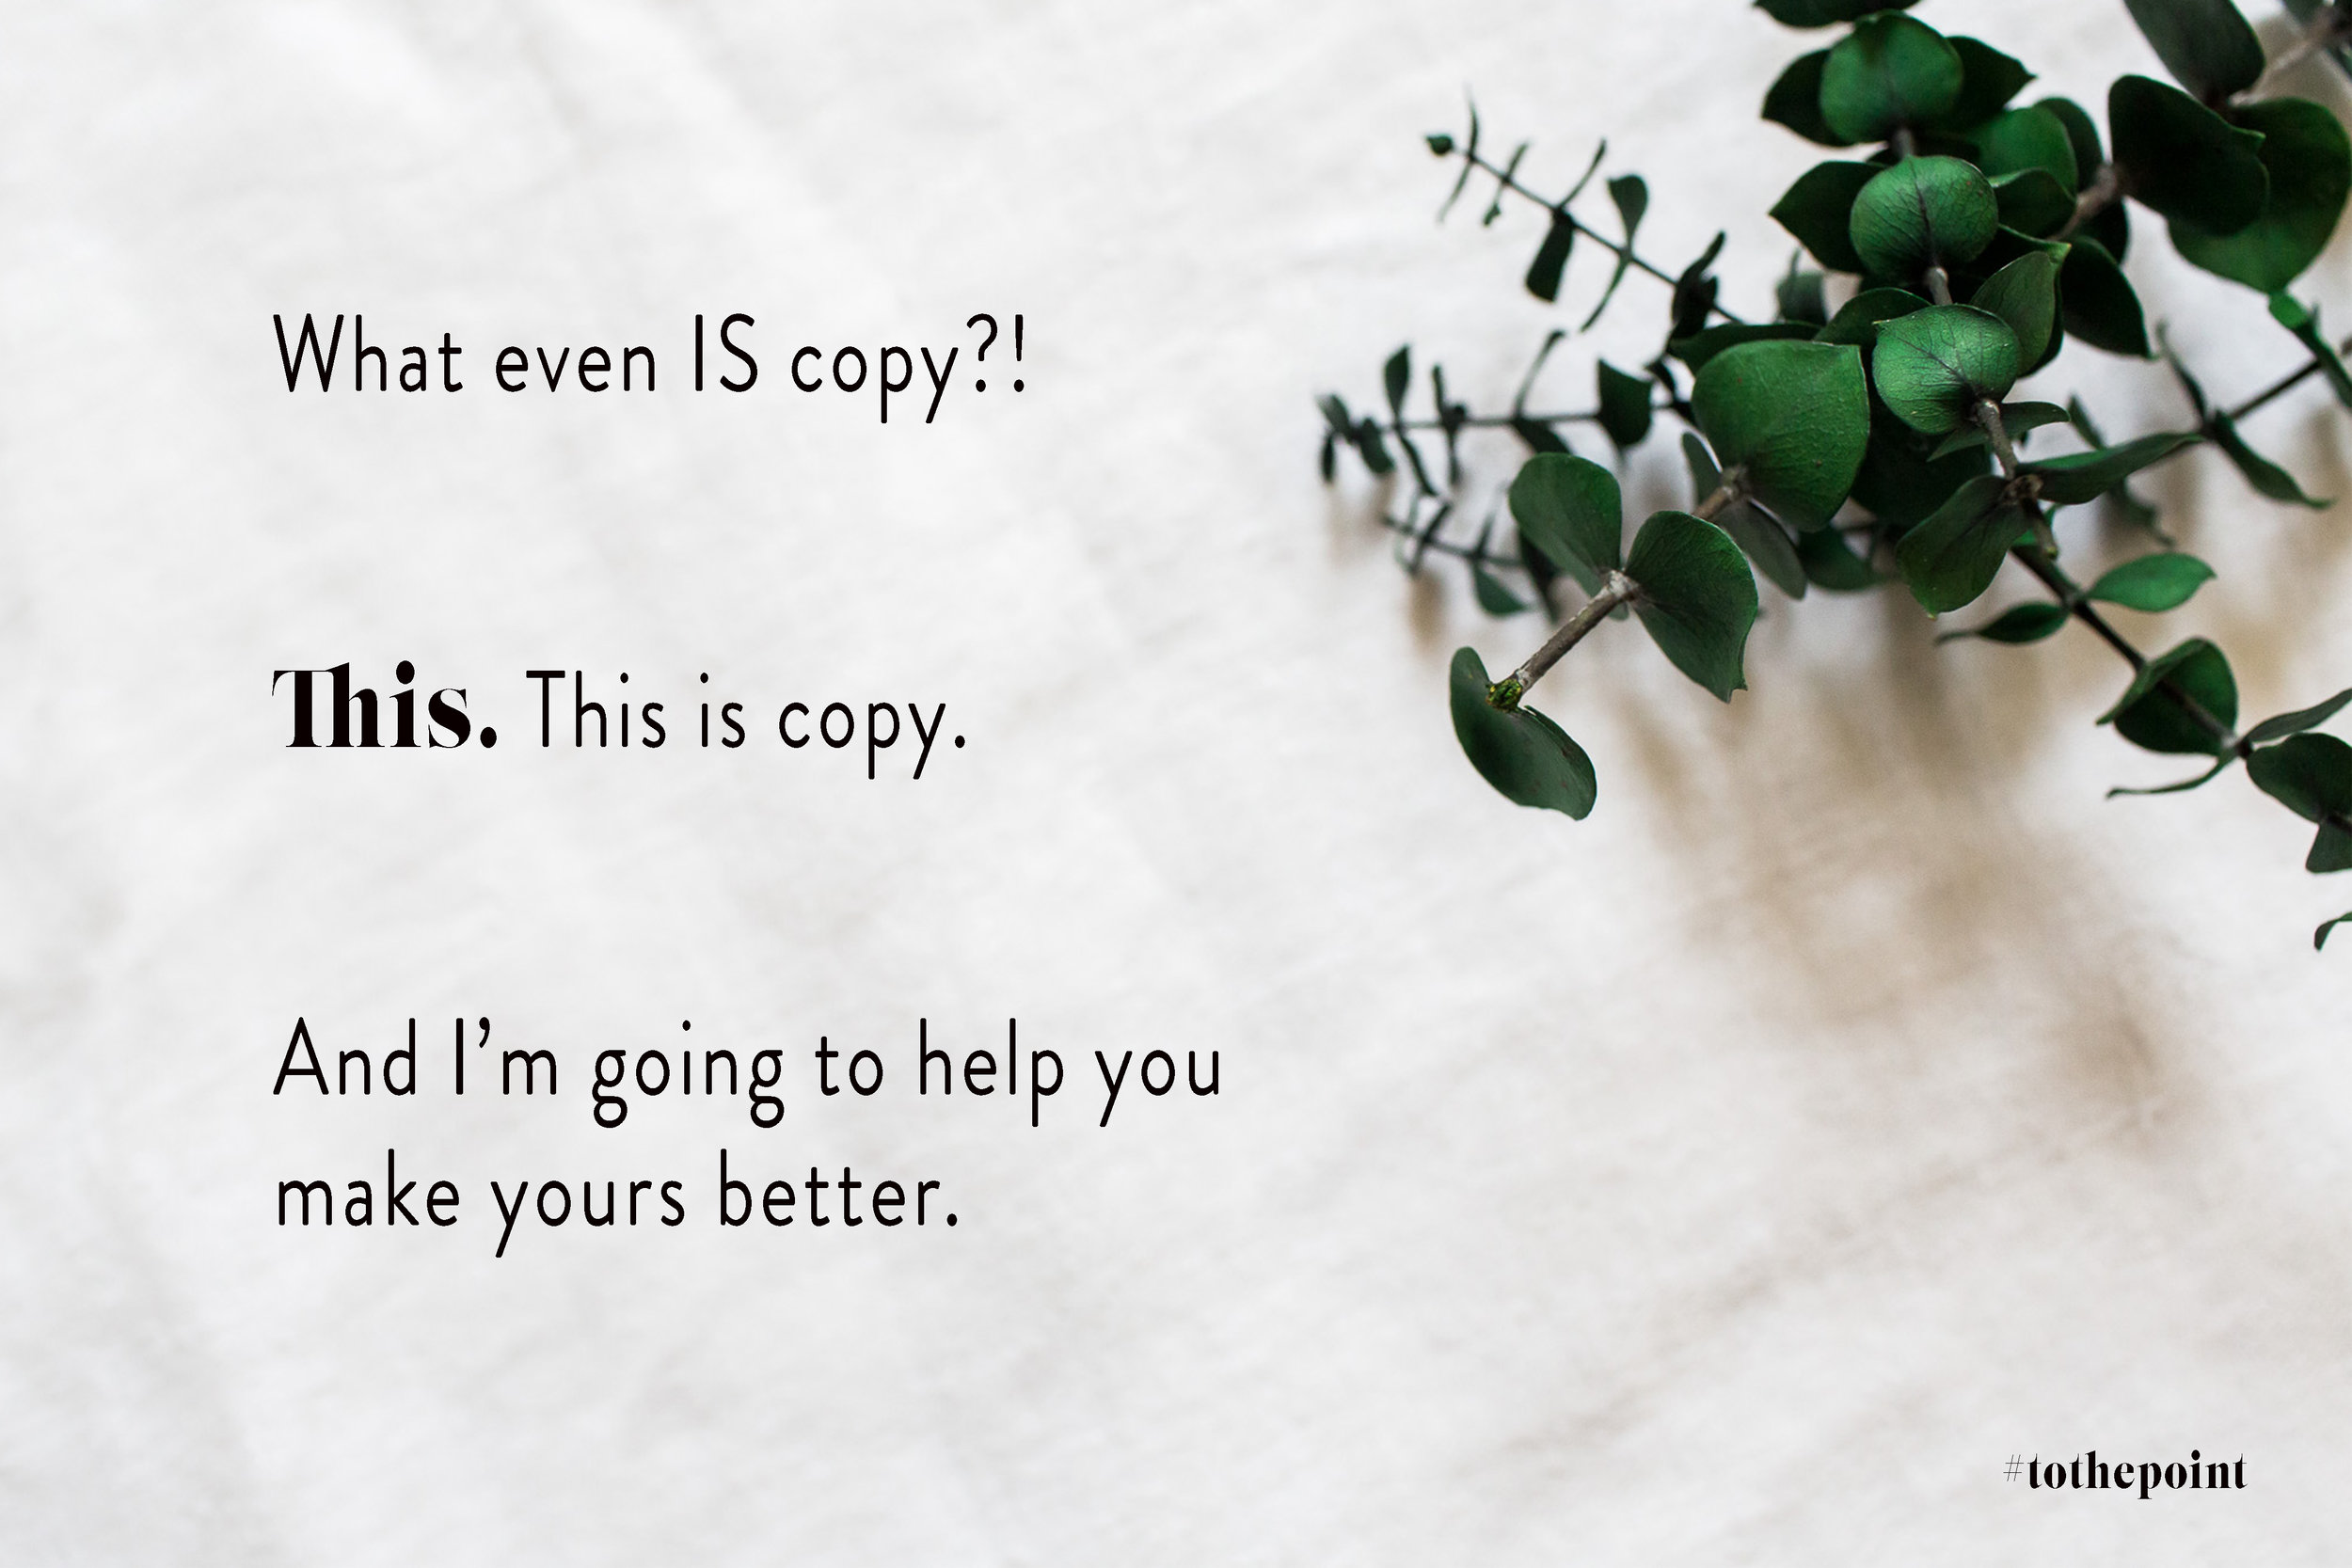 Copywriter for creatives, copywriting for creatives, brand copywriting, what is copywriting, creative copywriting, copyright vs copywriting, copywriter for entrepreneurs, copywriter for wedding professionals, copywriter for designers, copywriter for wedding photographers, copywriting for photographers